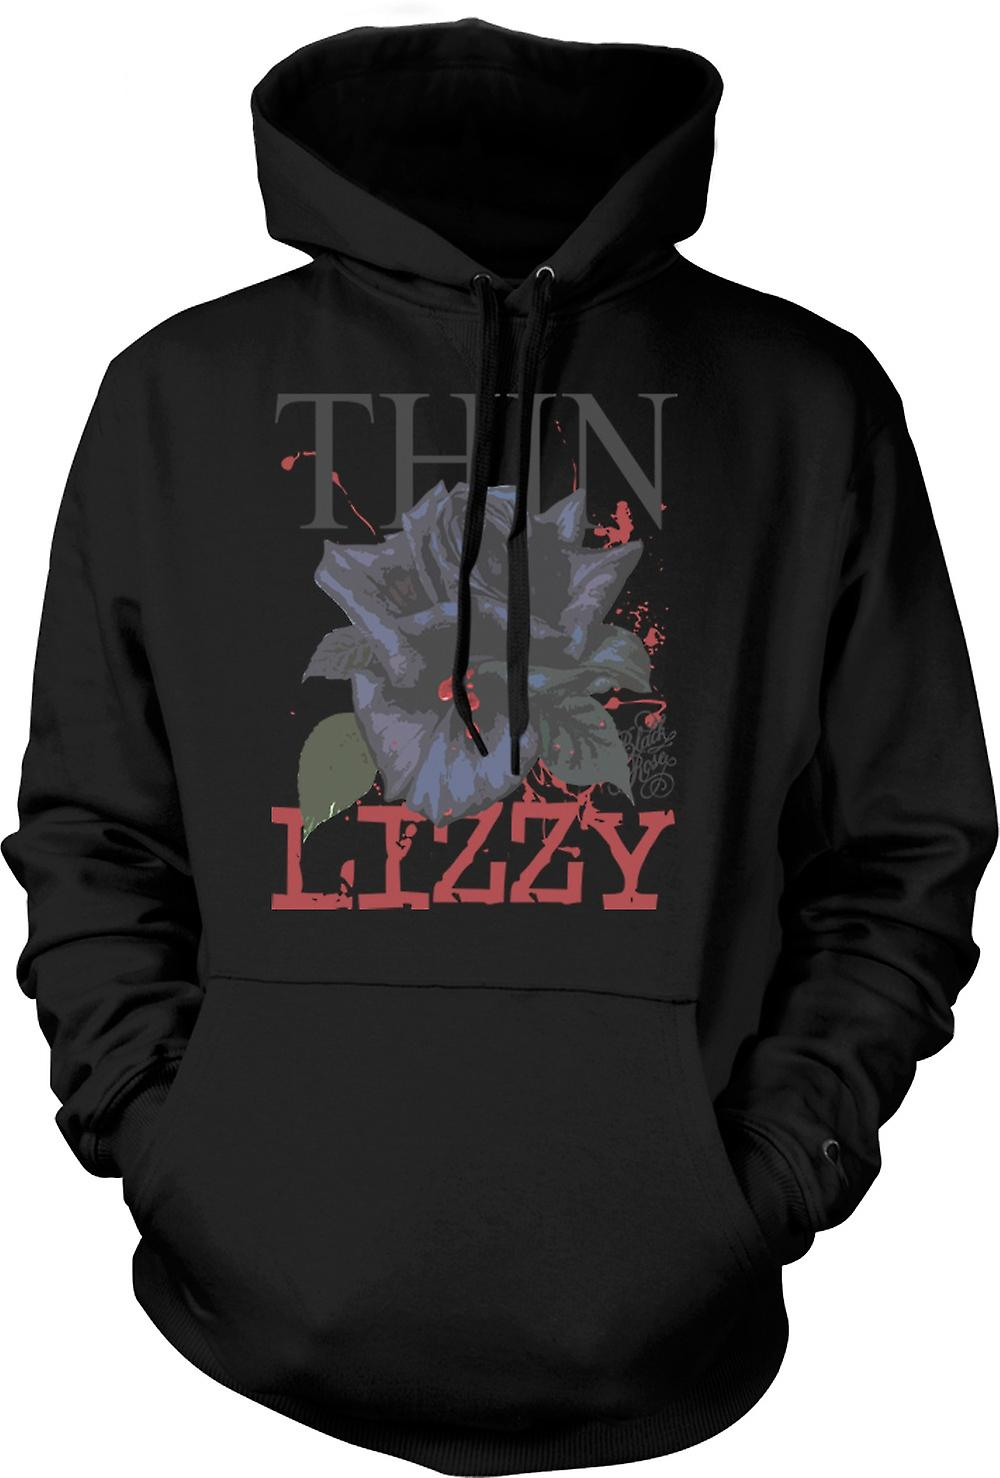 Mens Hoodie - Thin Lizzy-Rose